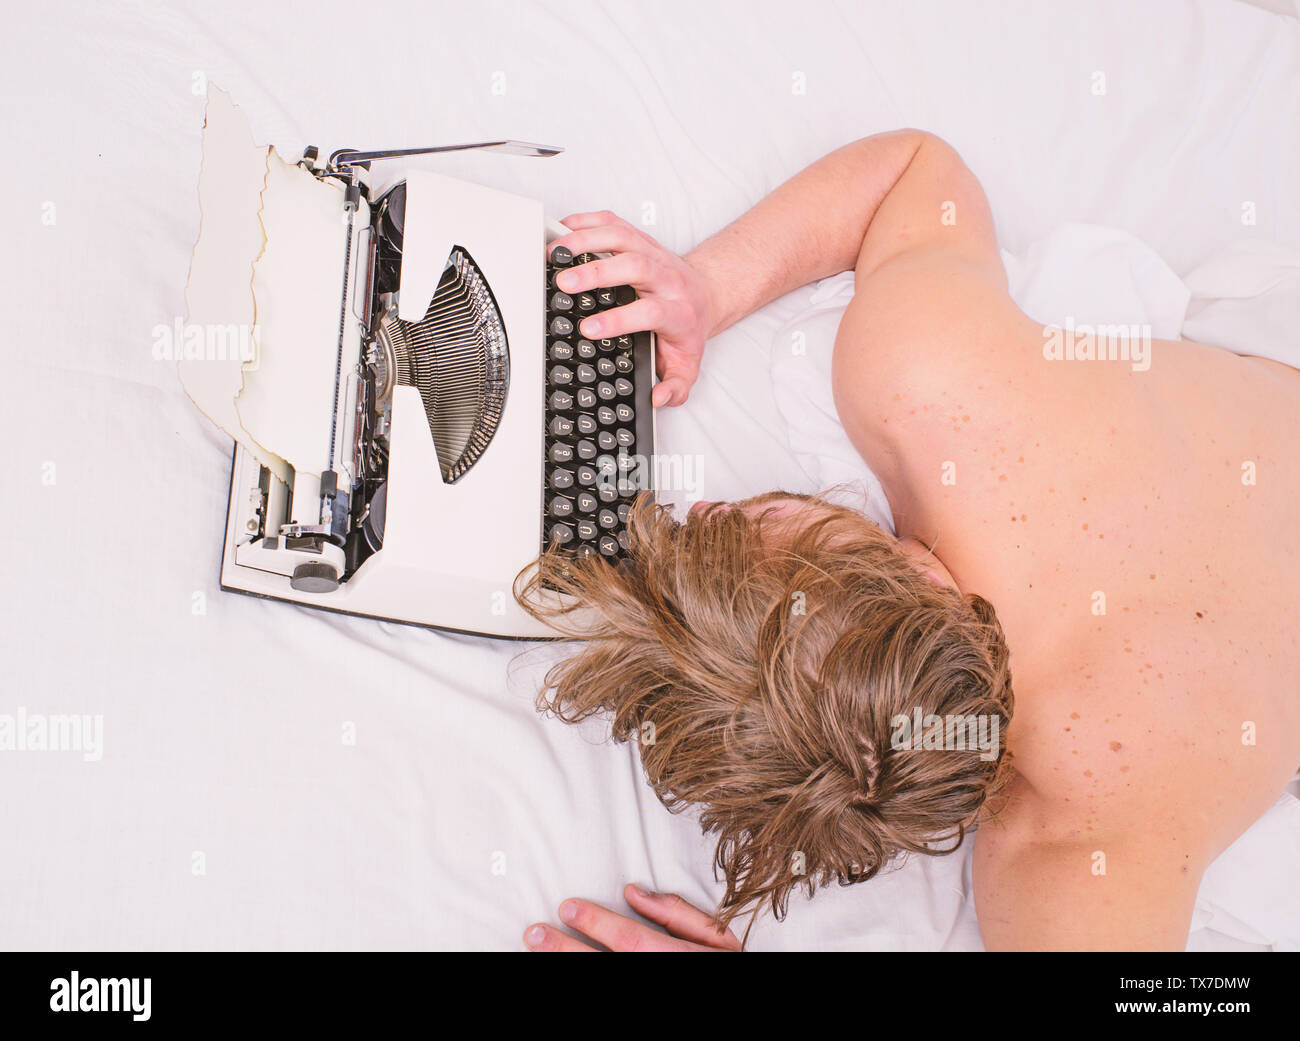 Man sleepy lay bedclothes while work. Writer used old fashioned typewriter. Exhausting occupation. Author tousled hair fall asleep while write book. Workaholic fall asleep. Man with typewriter sleep. - Stock Image